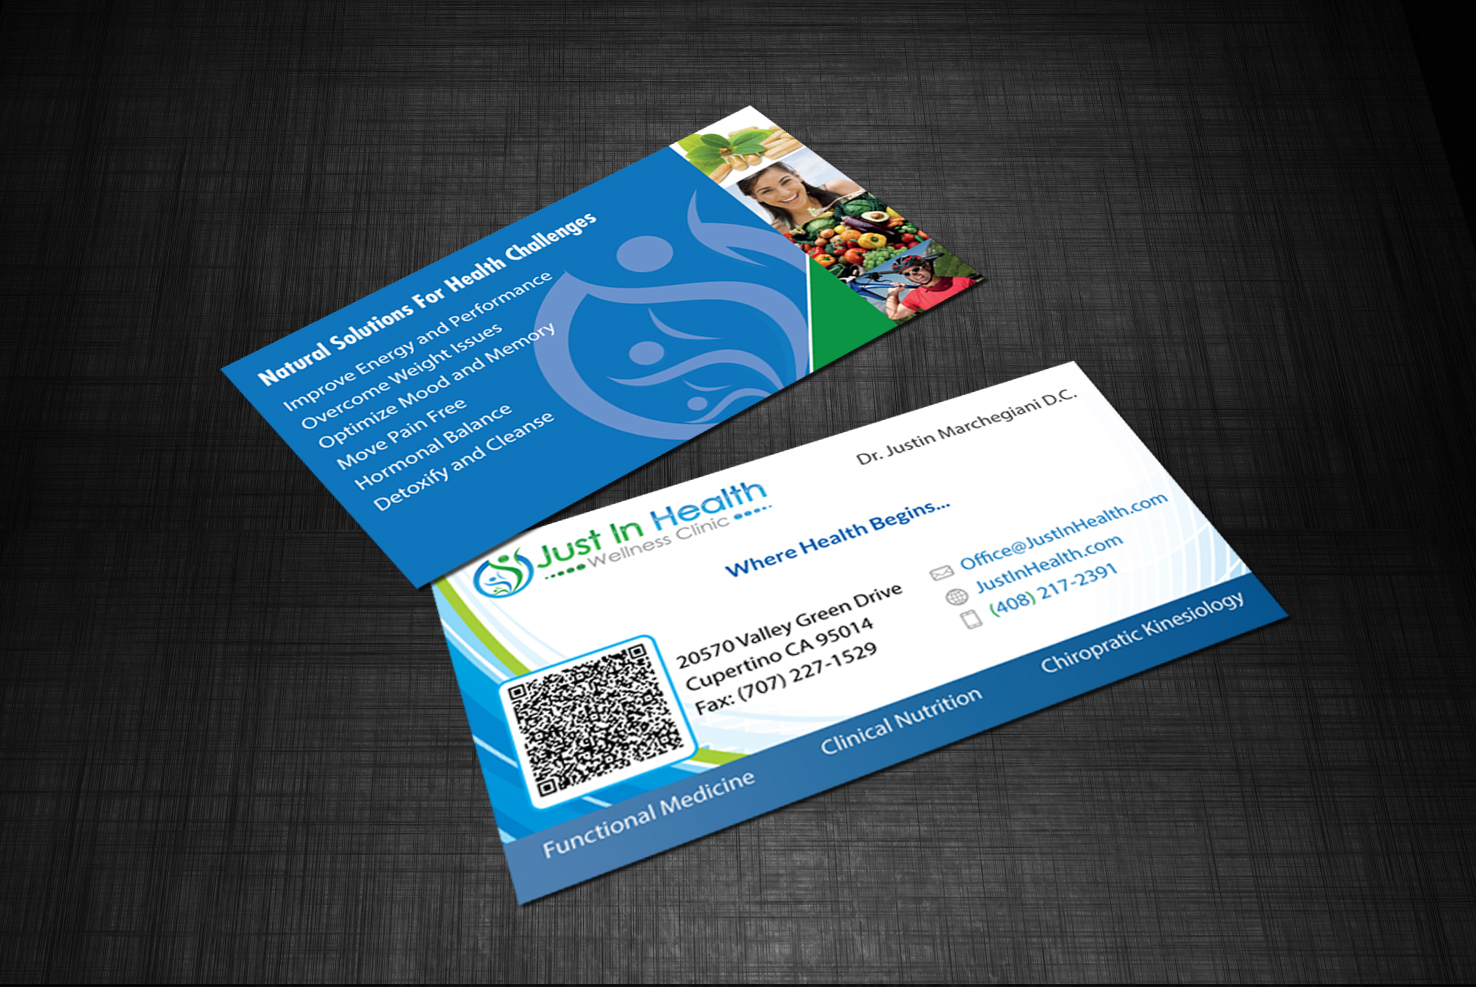 Real versatile technologies justinhealth business card mockup presentation v4 second colourmoves